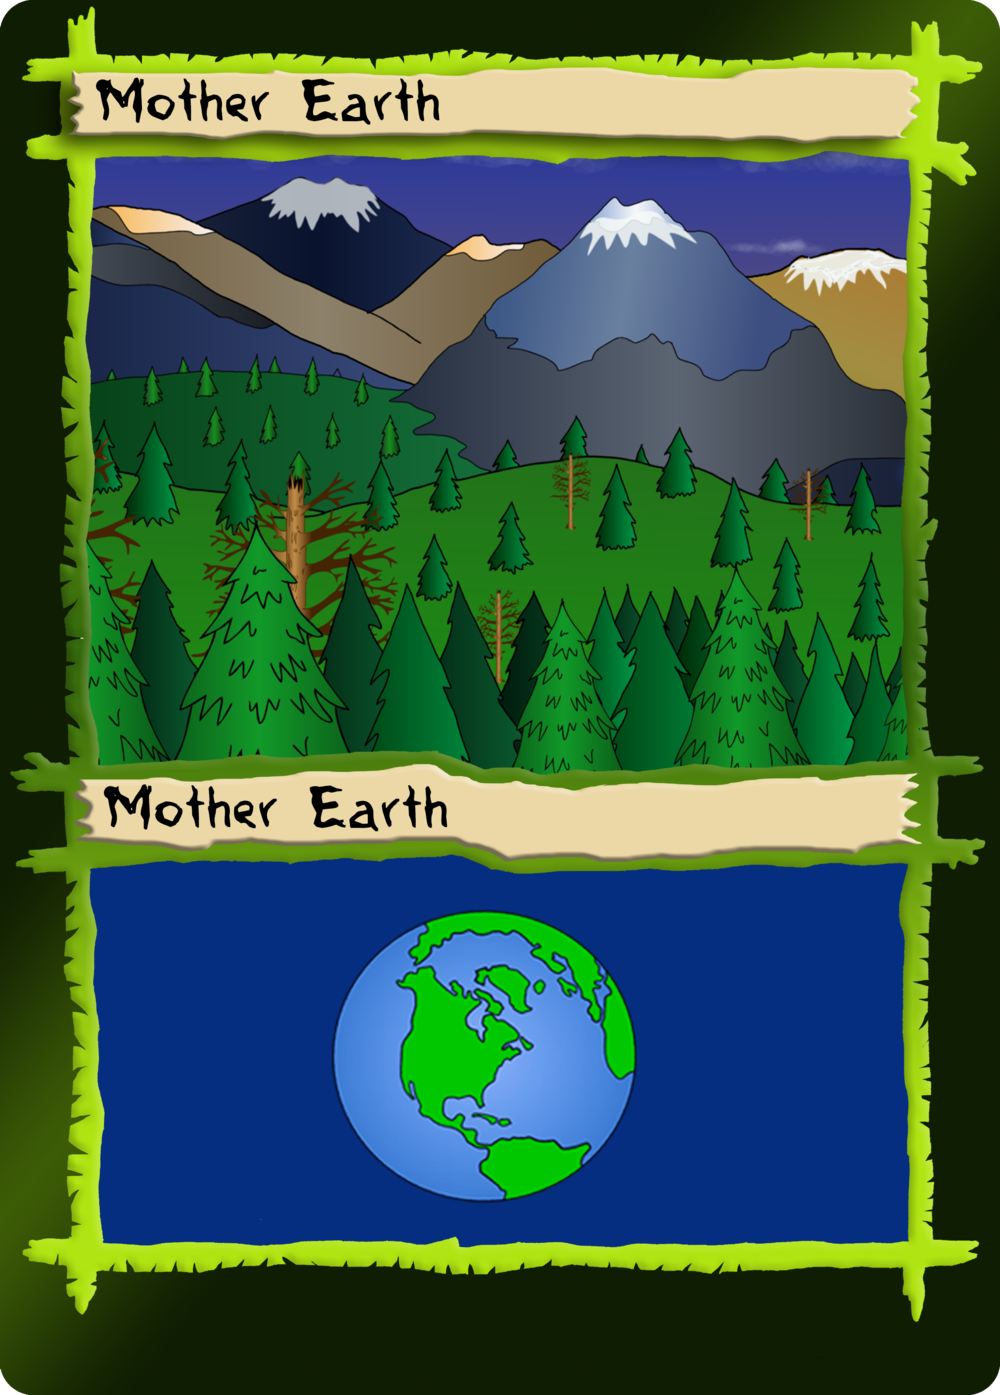 15_Mother earth mana.png